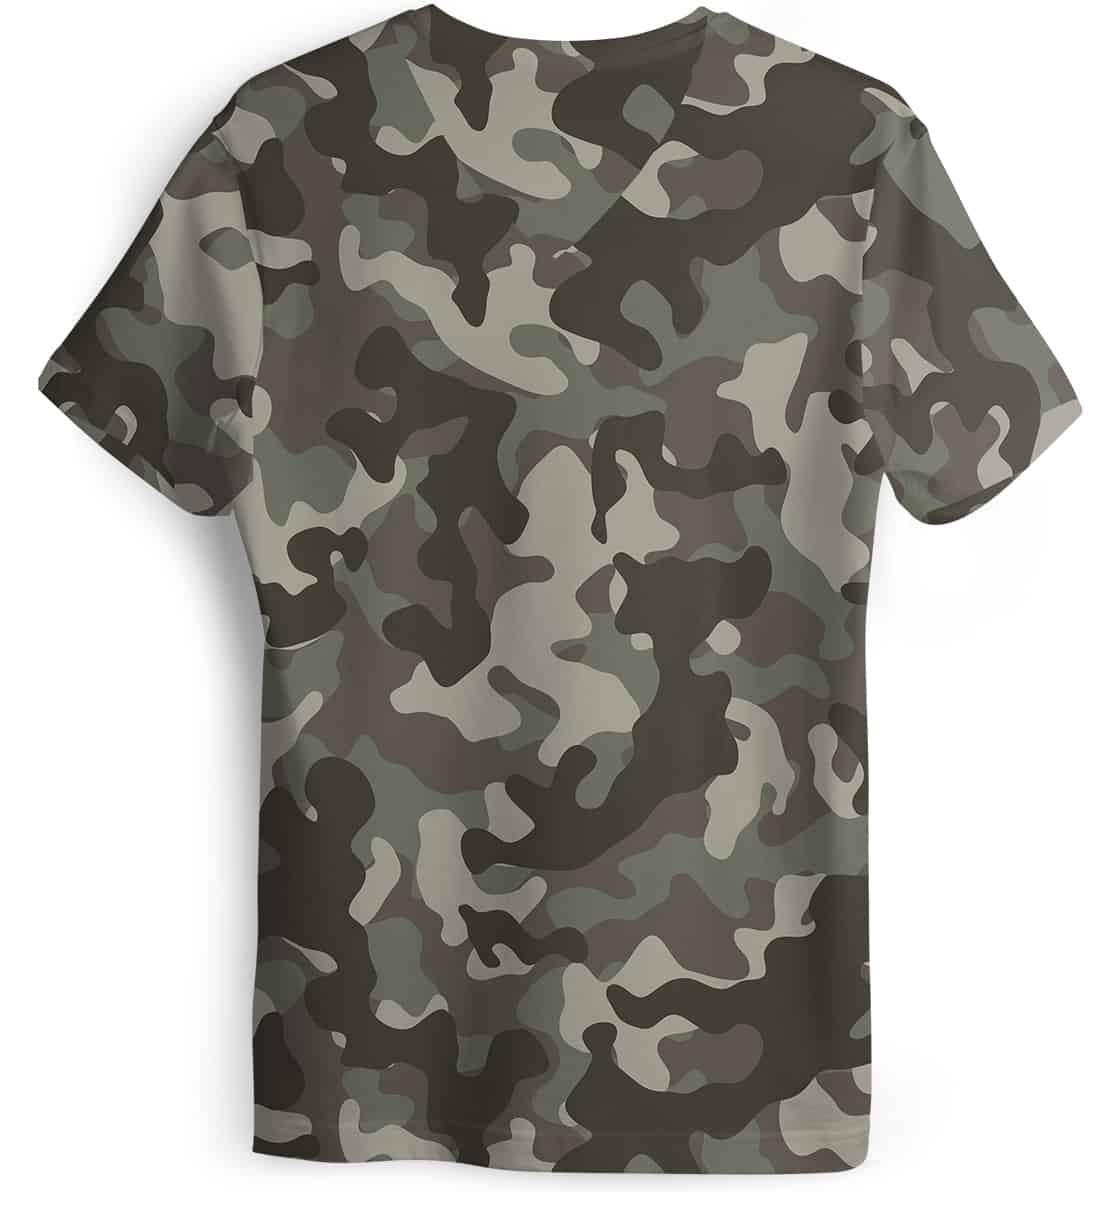 Camouflage deer hunter t shirt women 39 s short sleeve v for Camouflage t shirt design